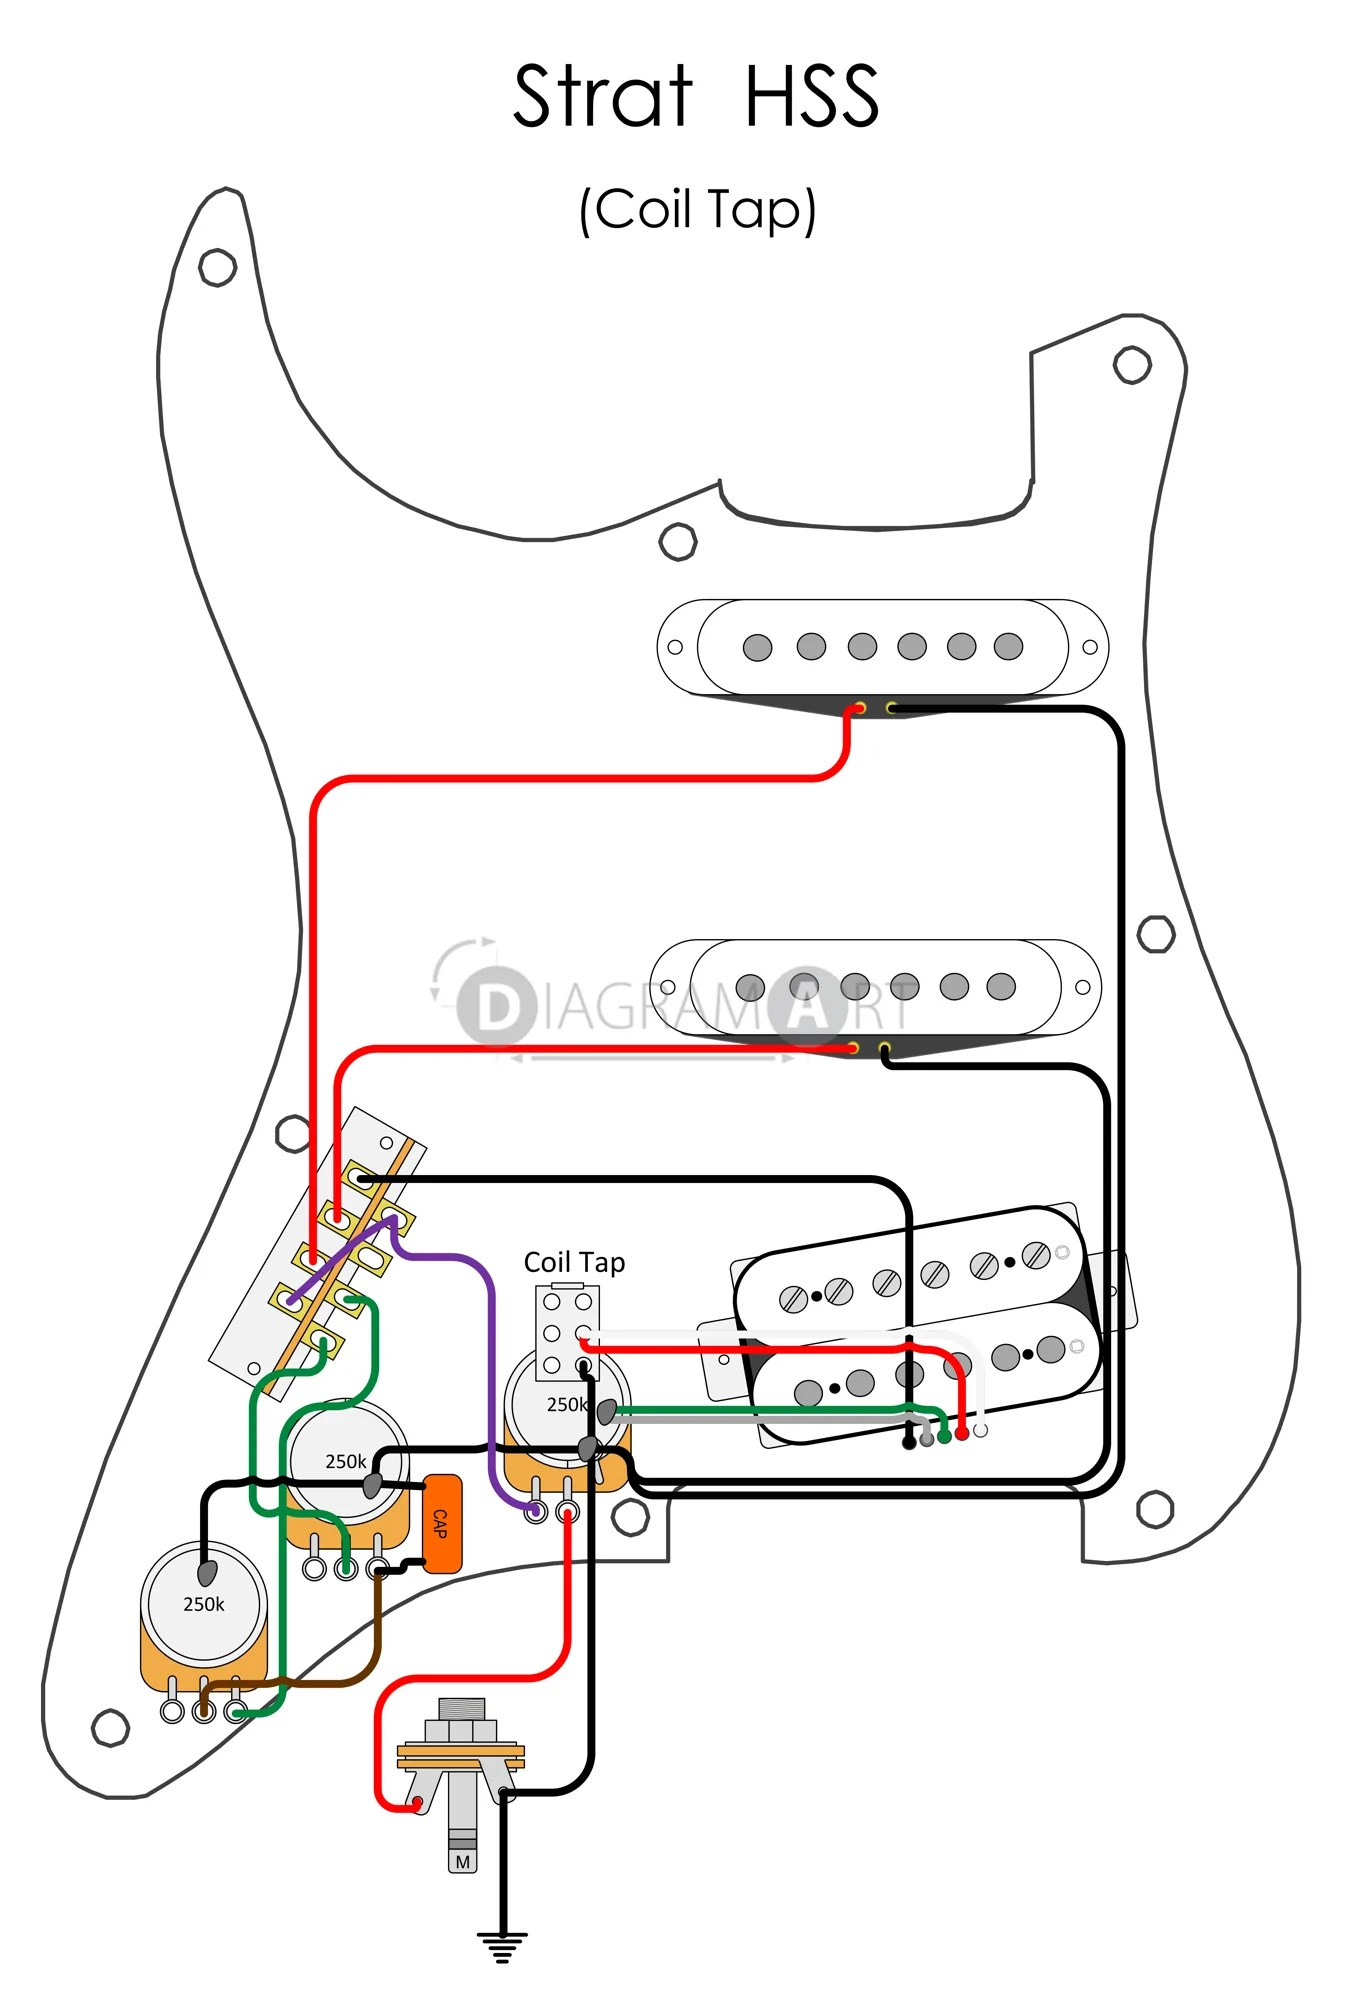 medium resolution of hss coil split wiring diagram automotive wiring diagrams seymour duncan coil split wiring diagrams coil split